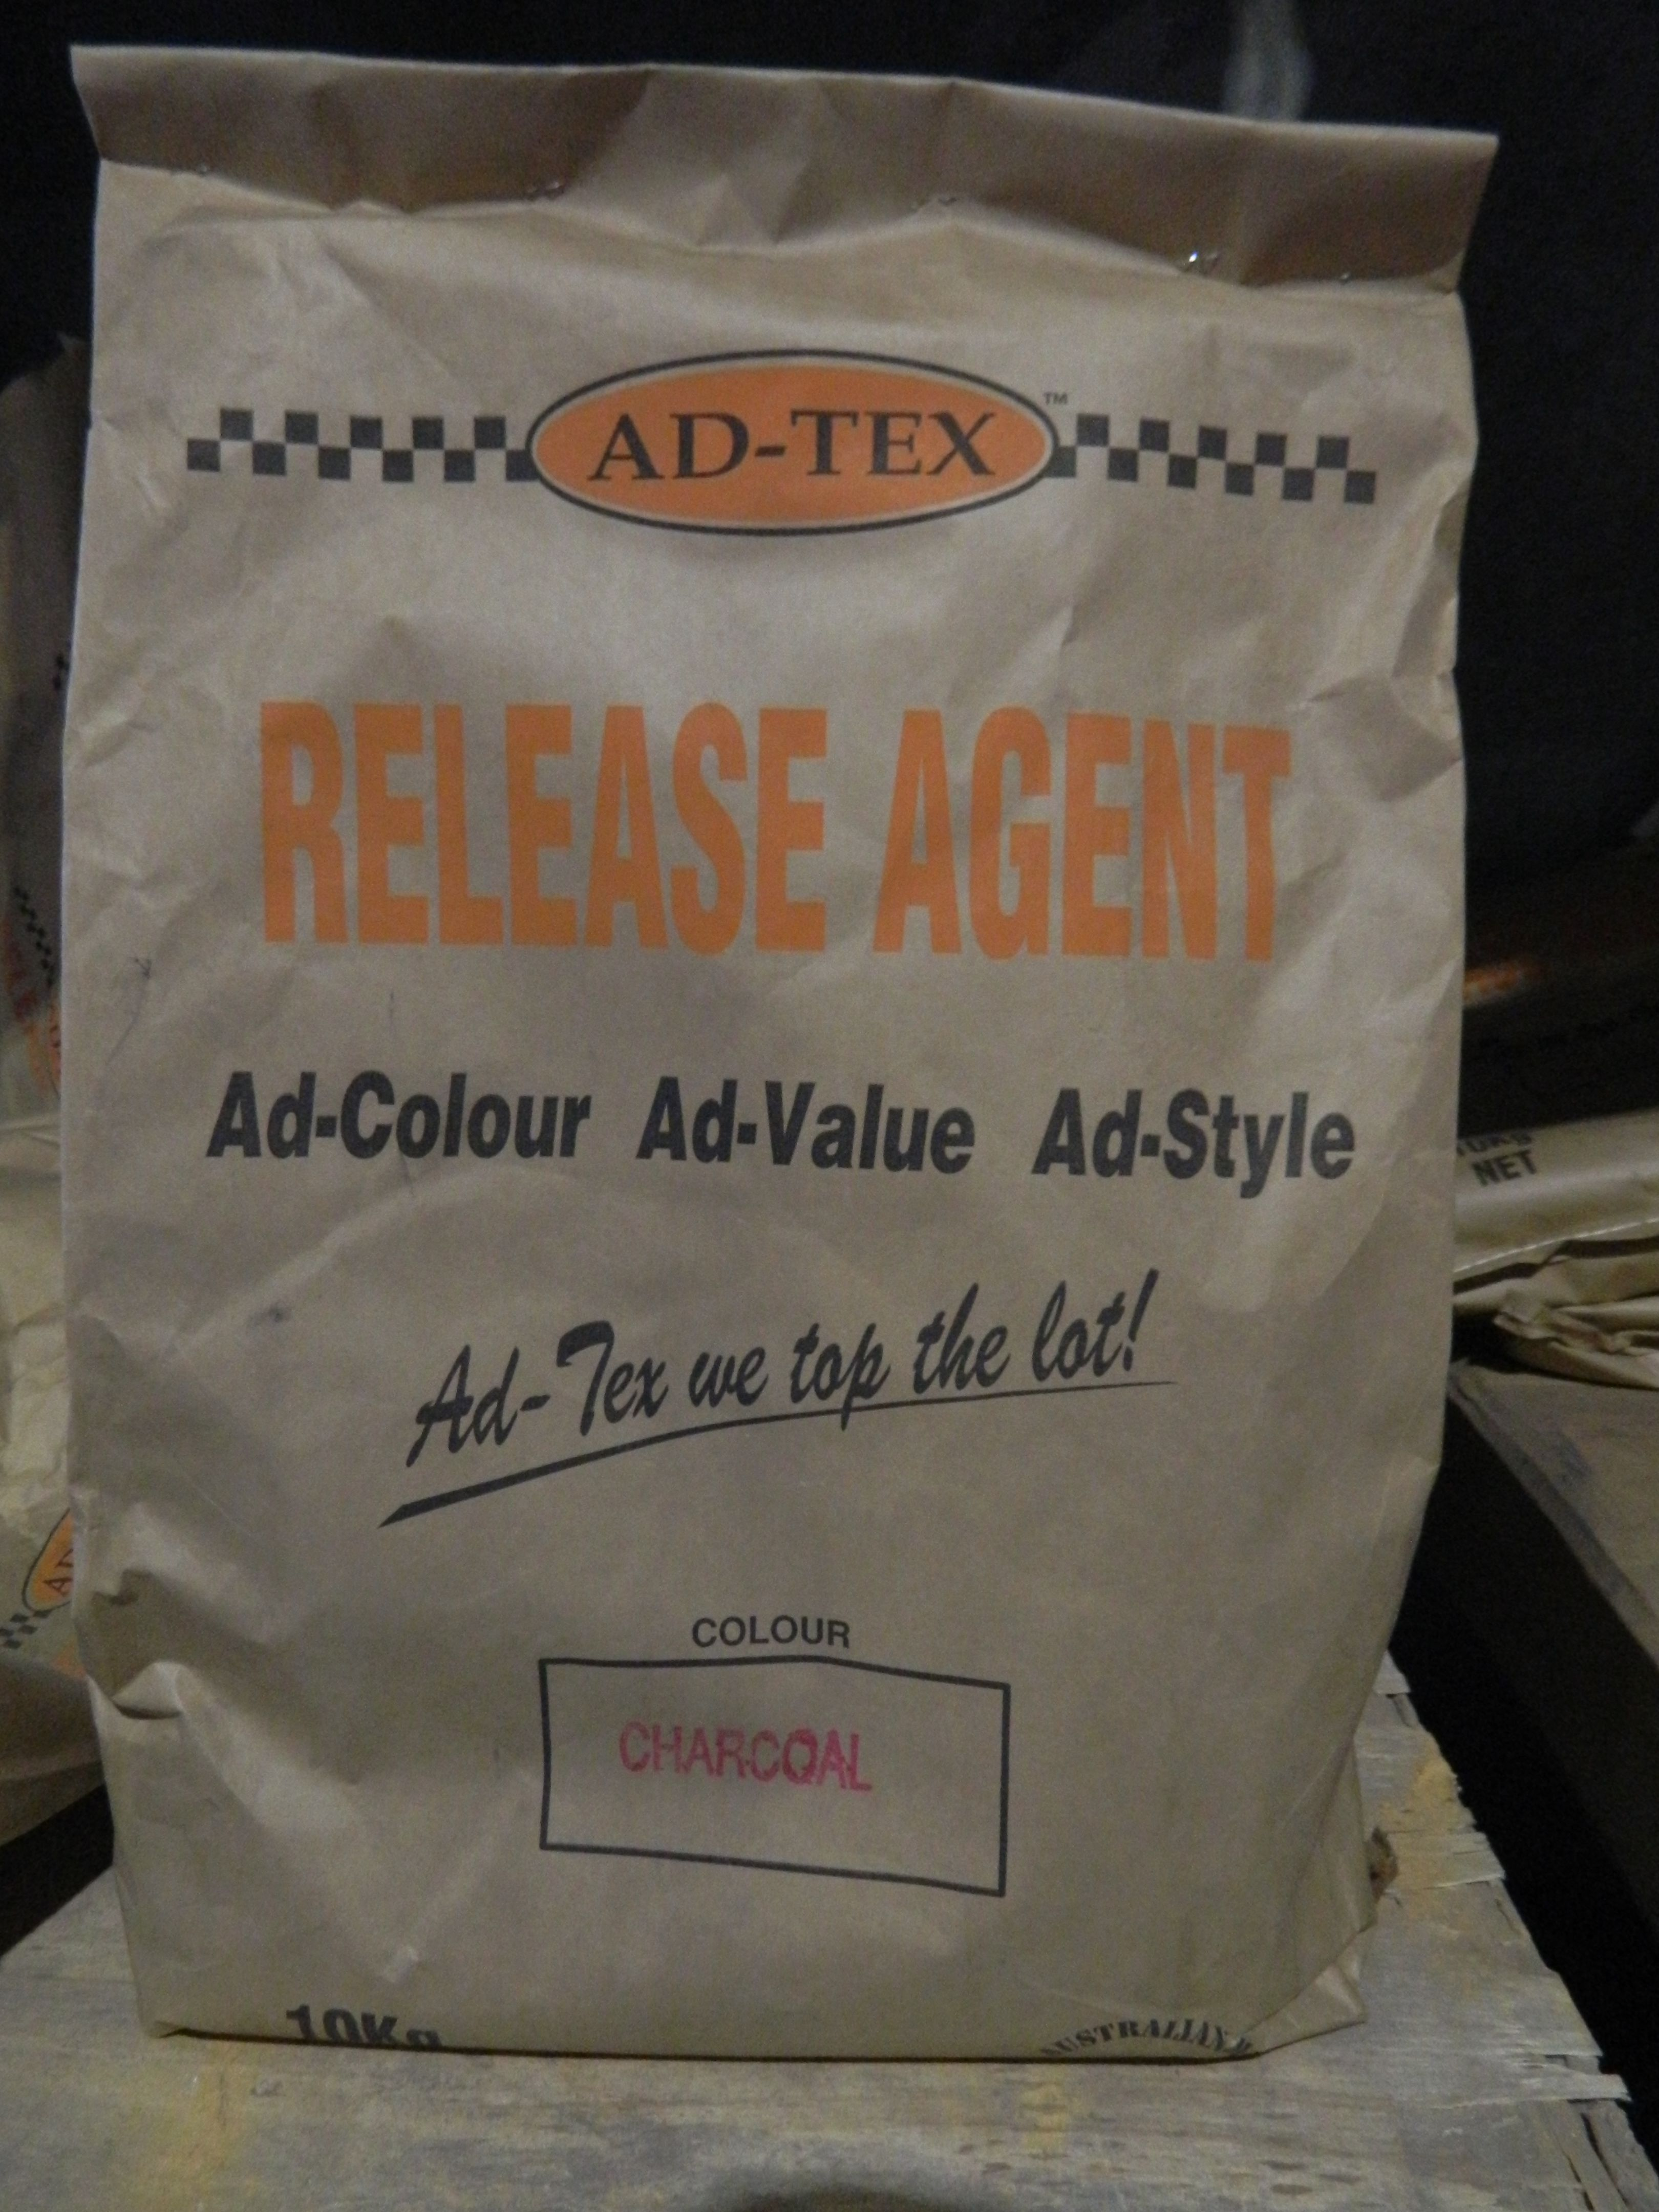 Ad-Tex Powder Release Agent is used to enhance the colour